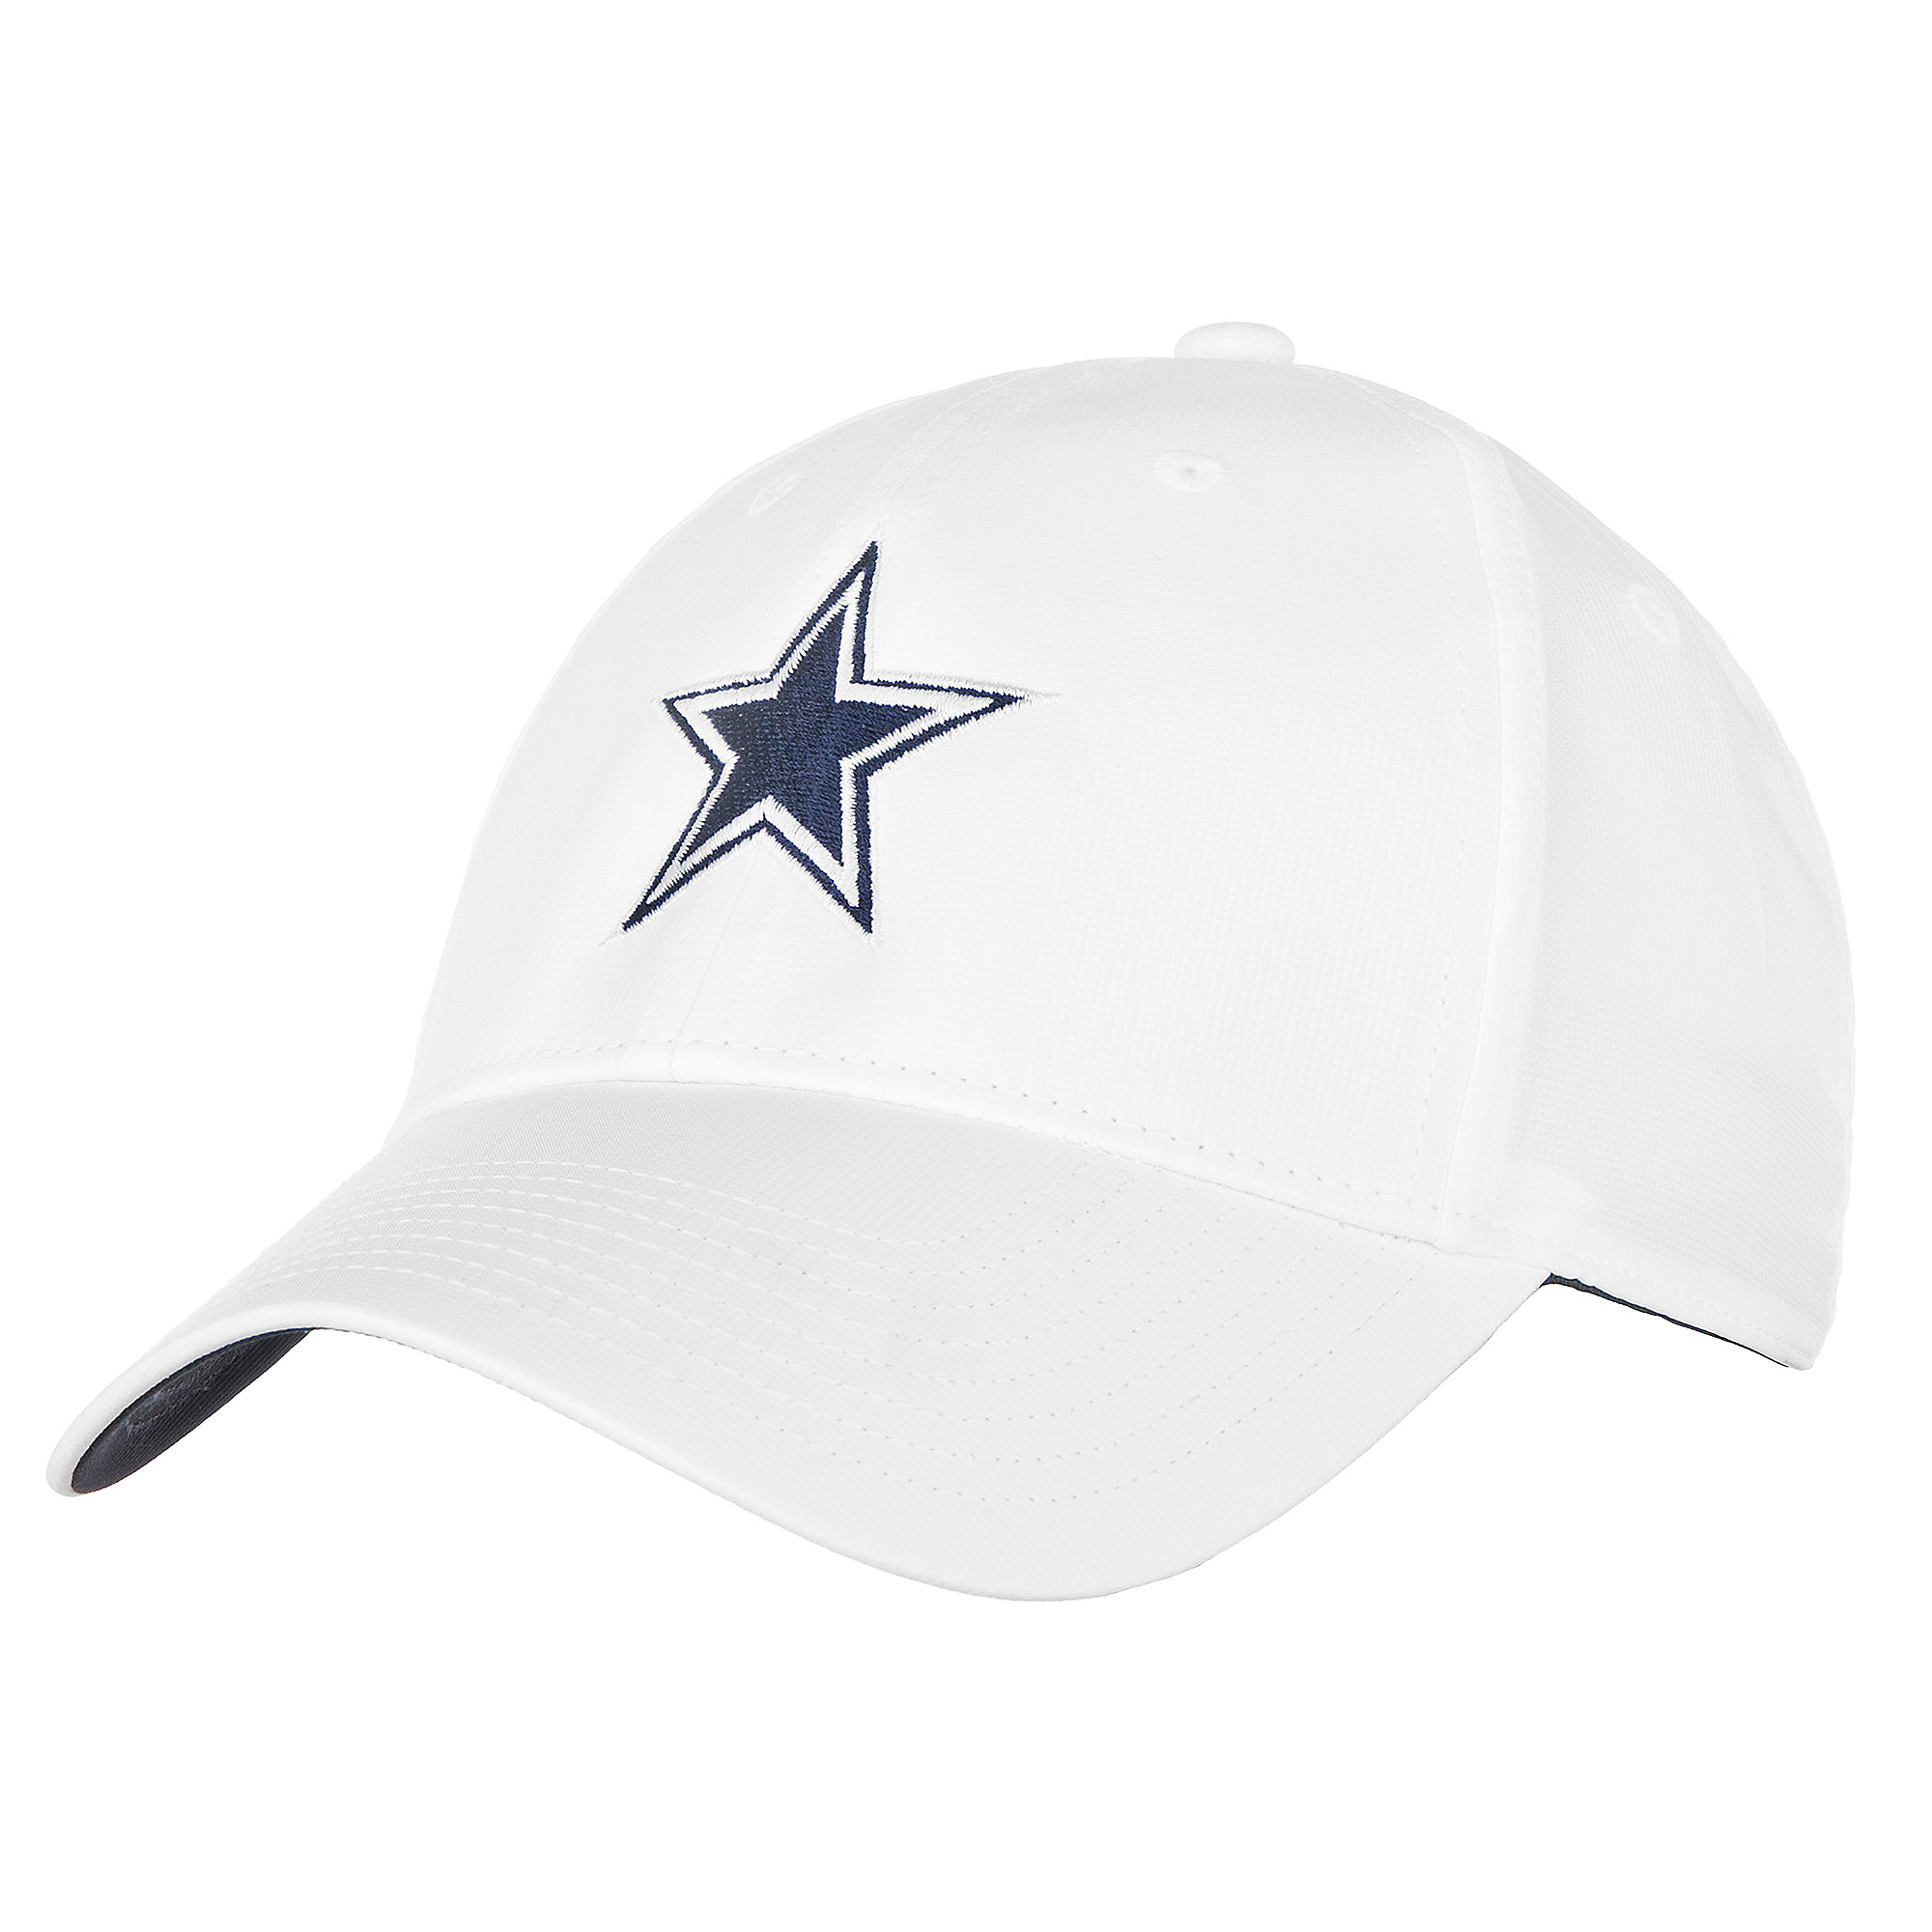 8ca9b868f Dallas Cowboys Nike Legacy91 Golf Hat